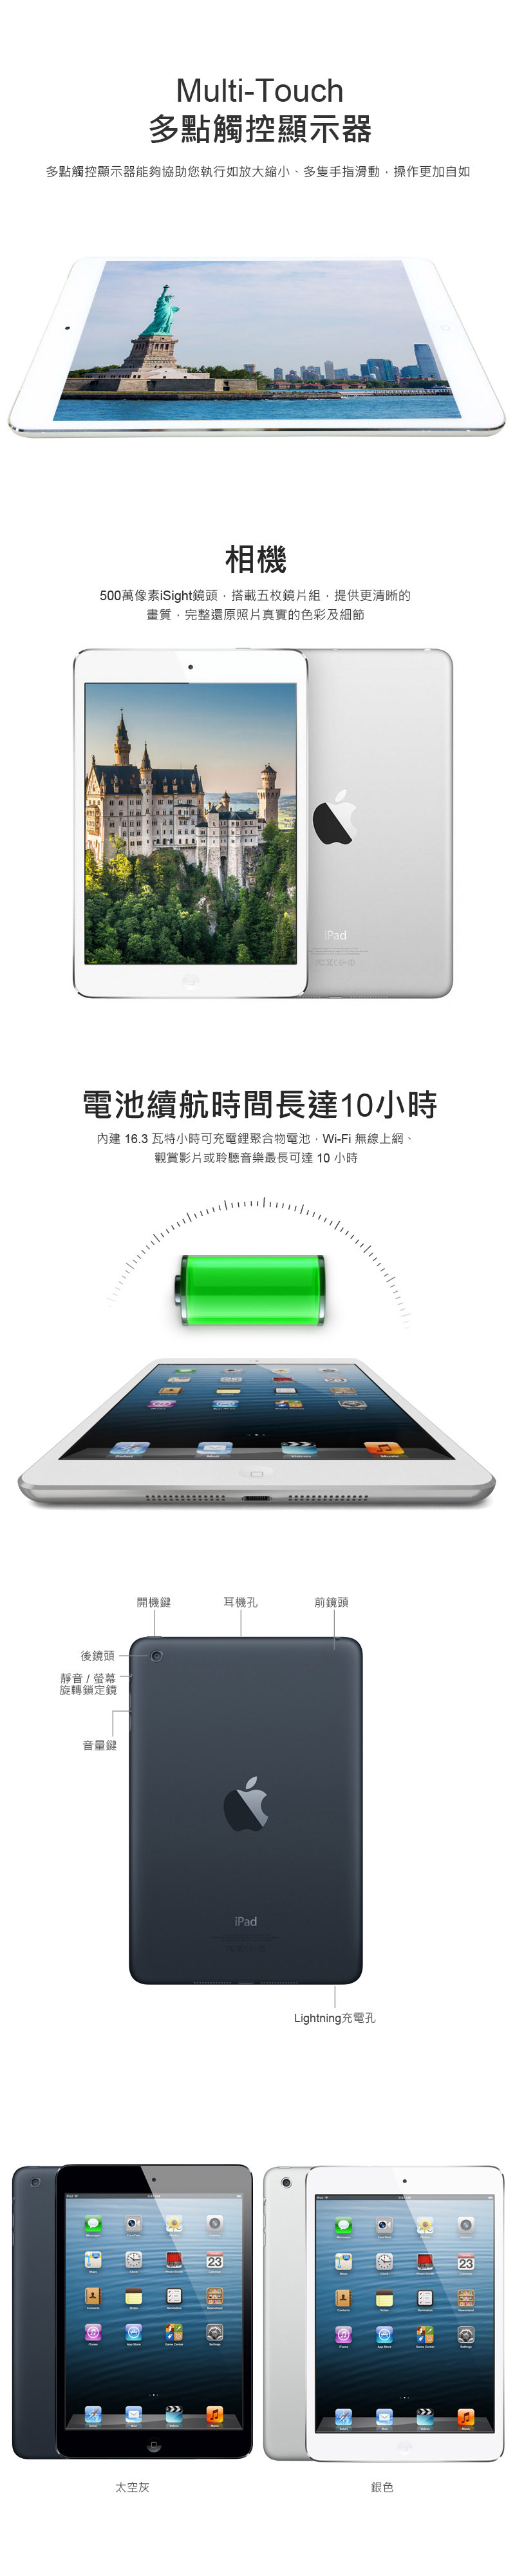 【Apple 福利品】iPad mini 2 Wi-Fi 16GB 平板電腦(A